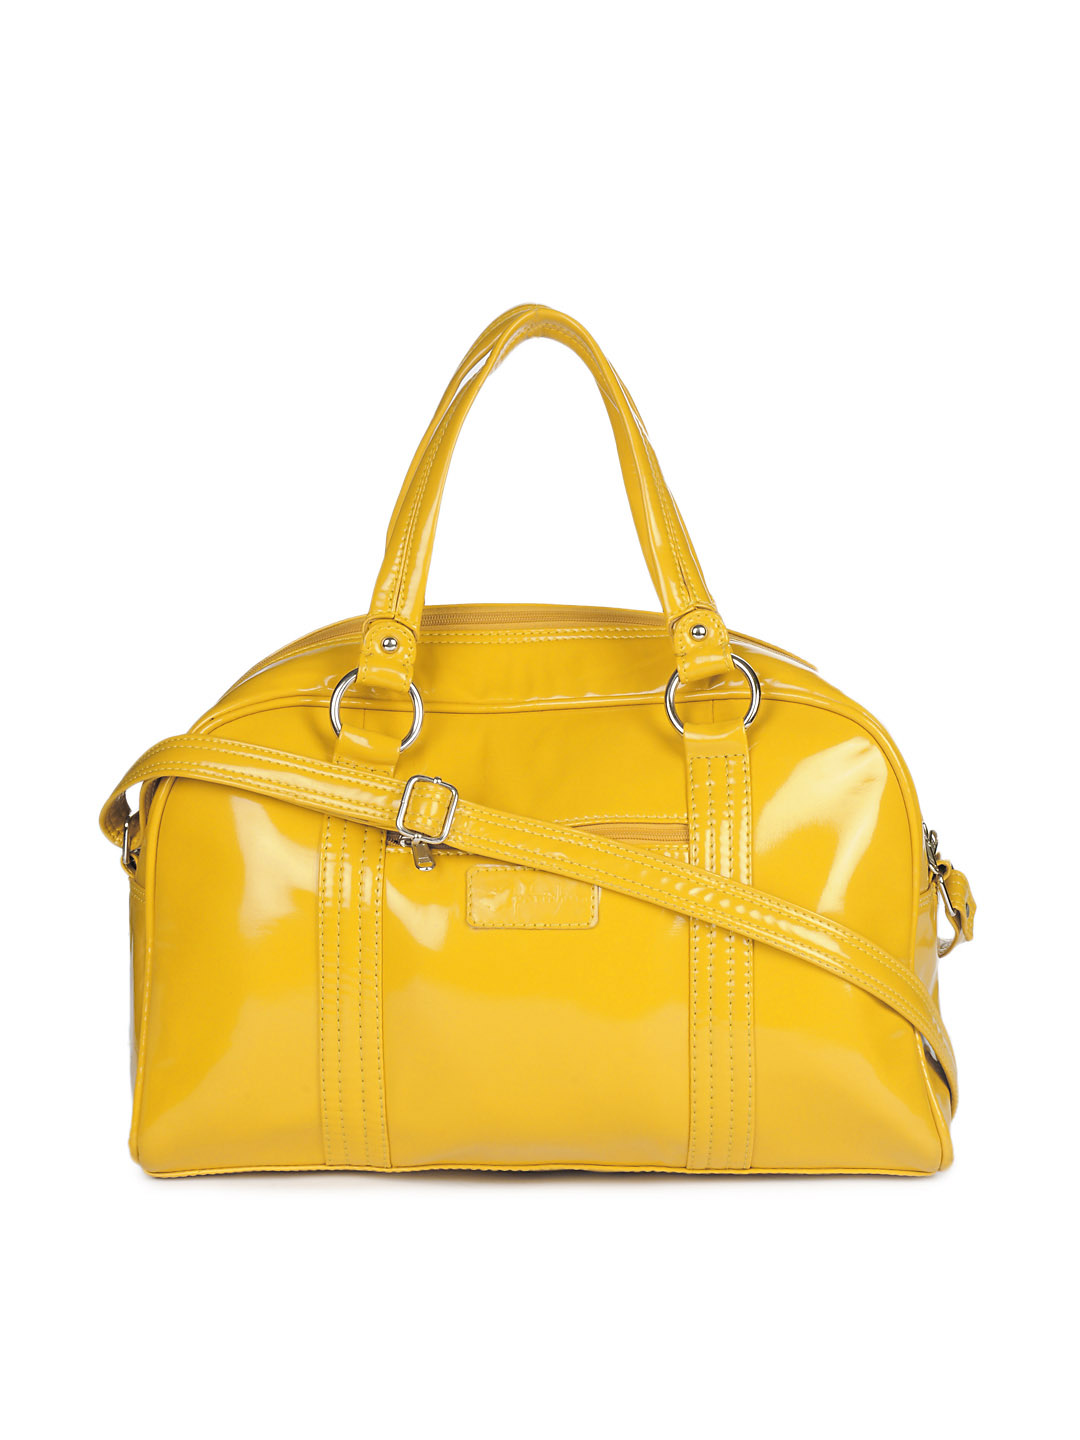 Paridhan Women Yellow Handbag